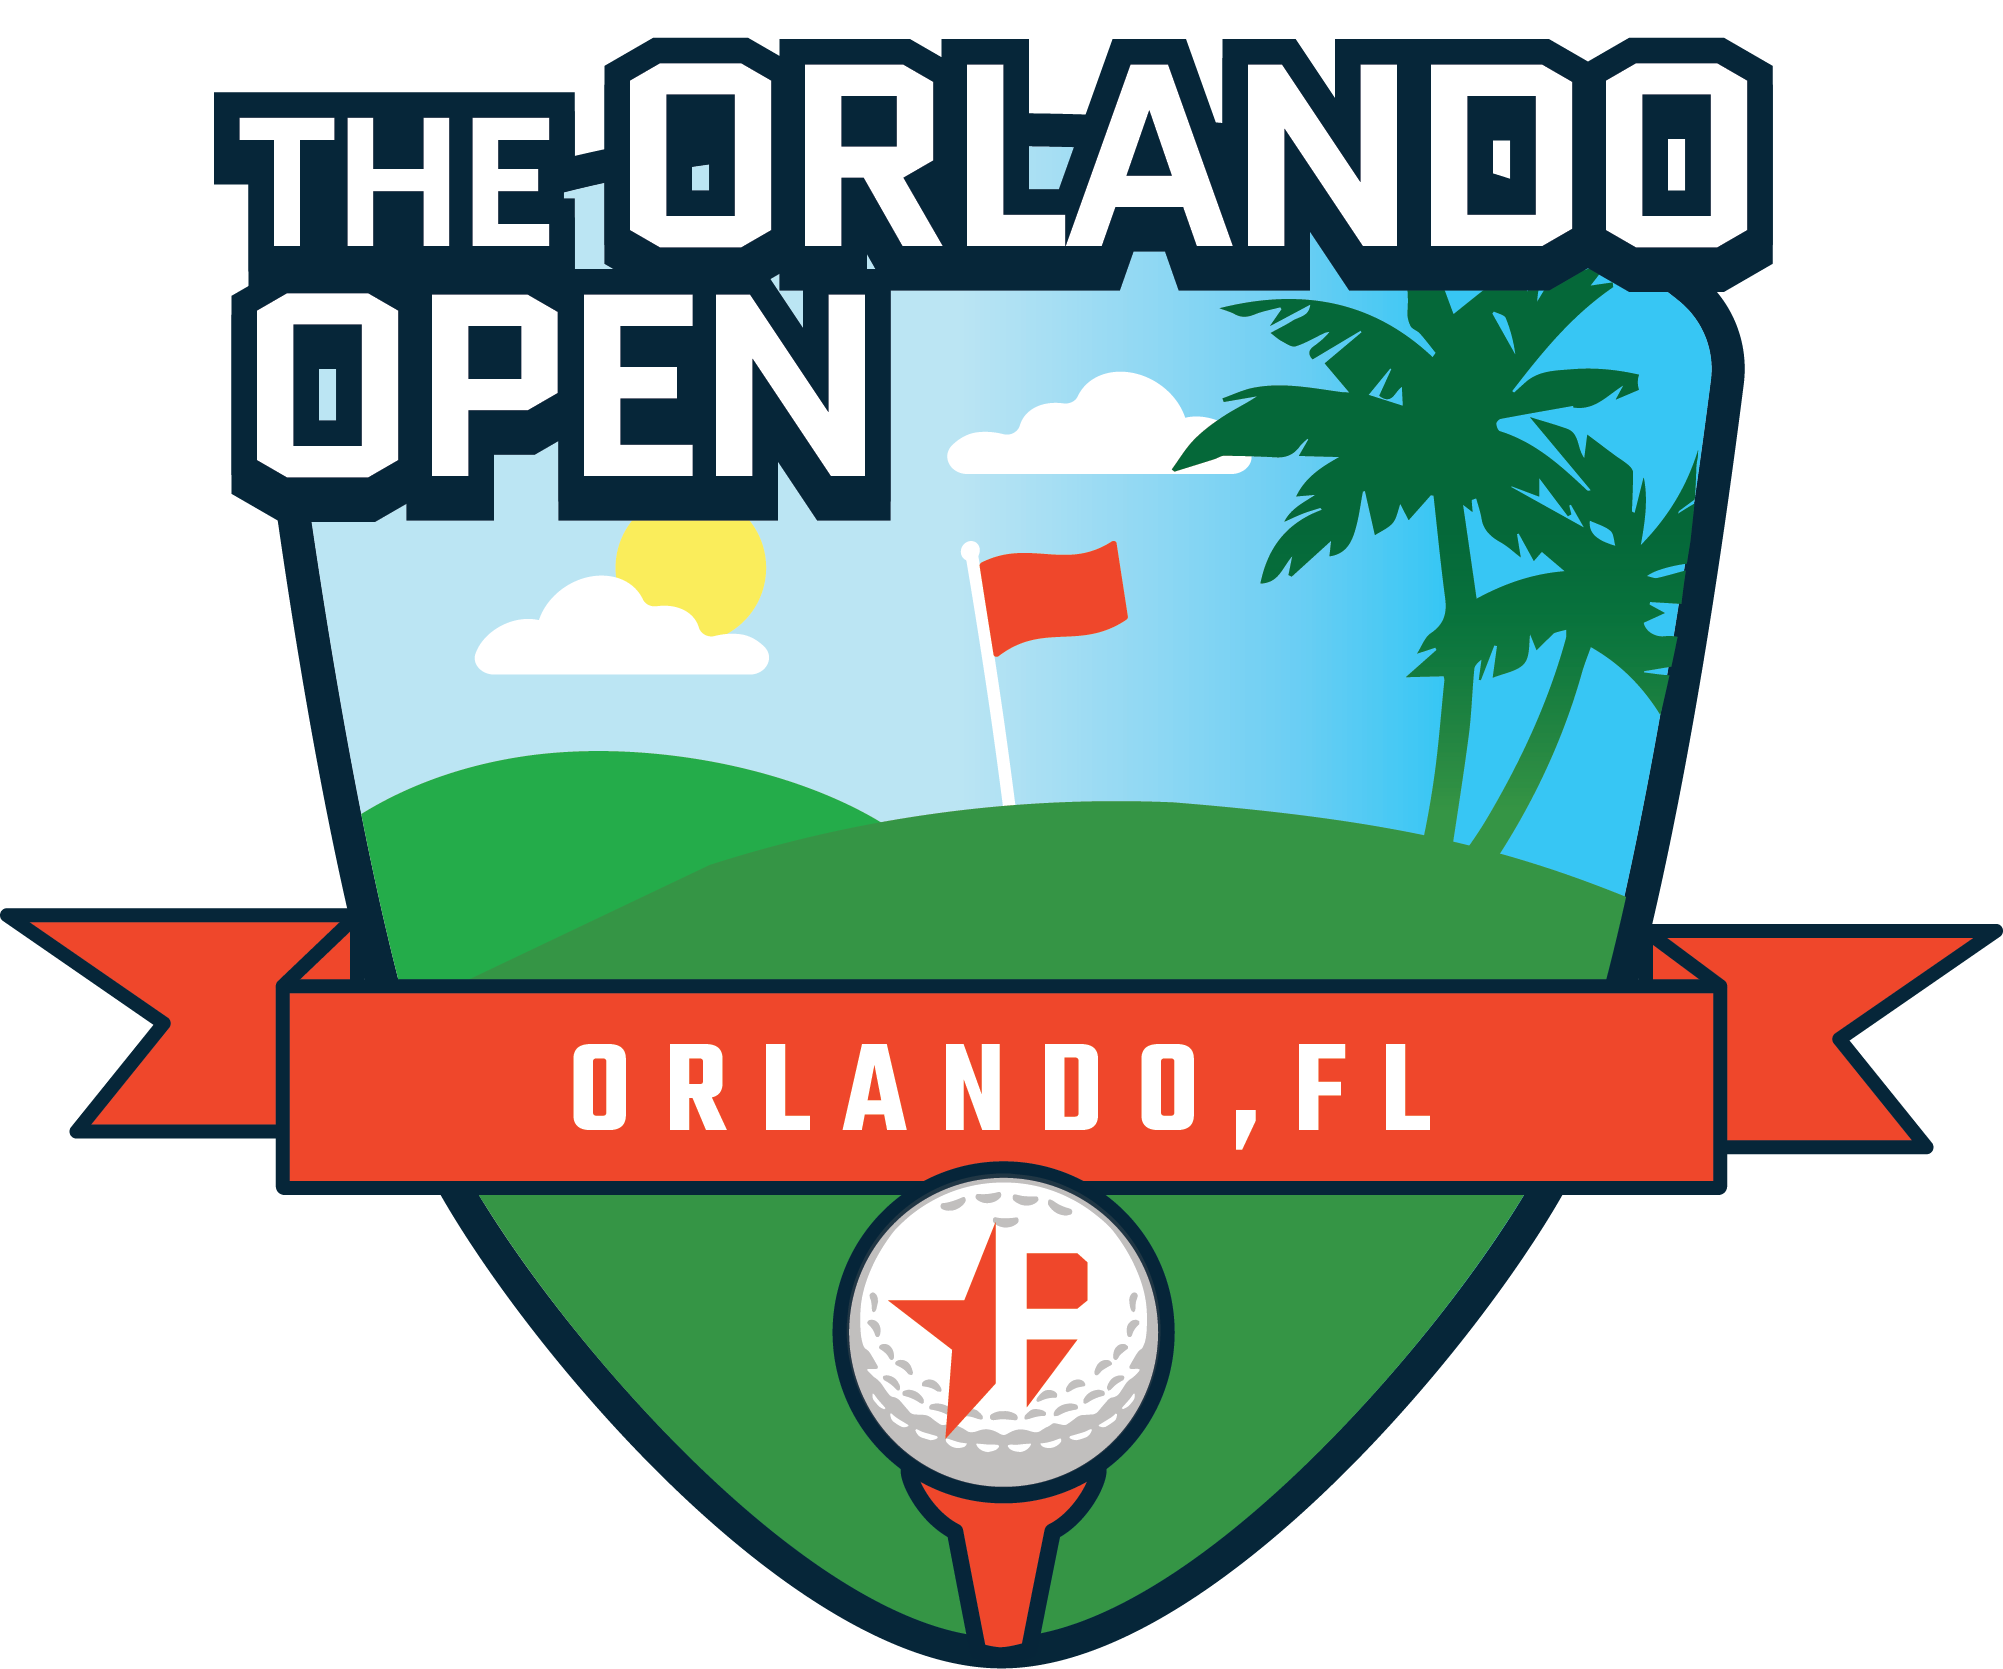 Prospects by Sports Illustrated Orlando Open logo